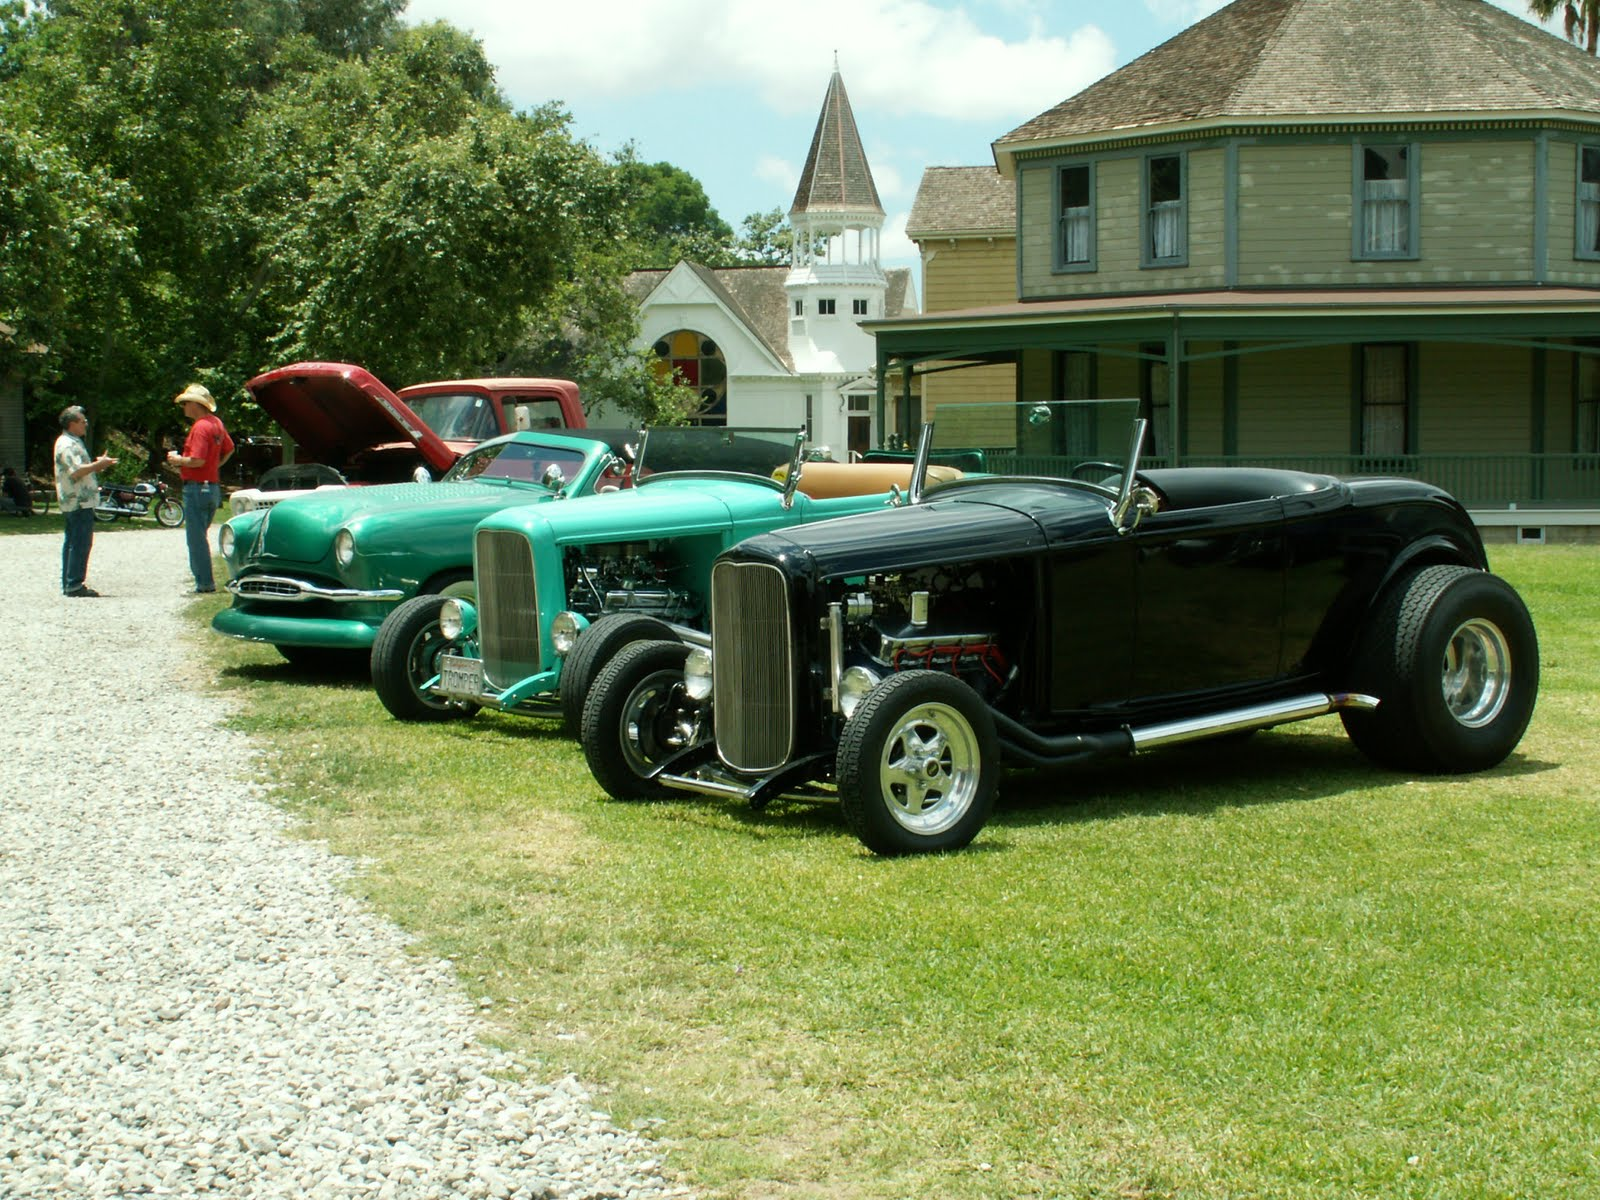 30th annual heritage classic antique car show antiques center. Black Bedroom Furniture Sets. Home Design Ideas